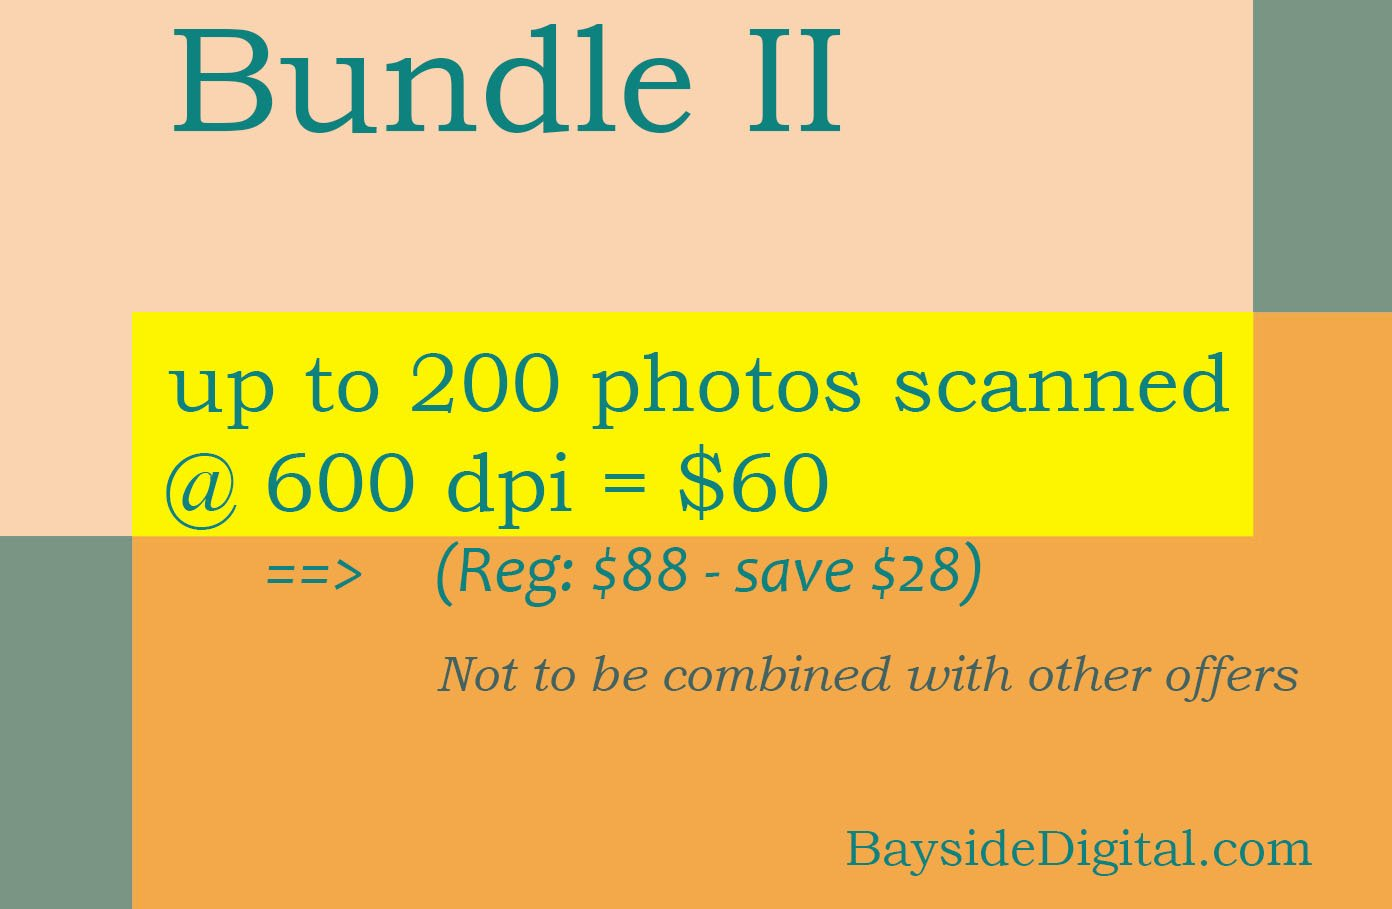 Scanning Digitizing Photos up to 200 at 600 dpi - special sale